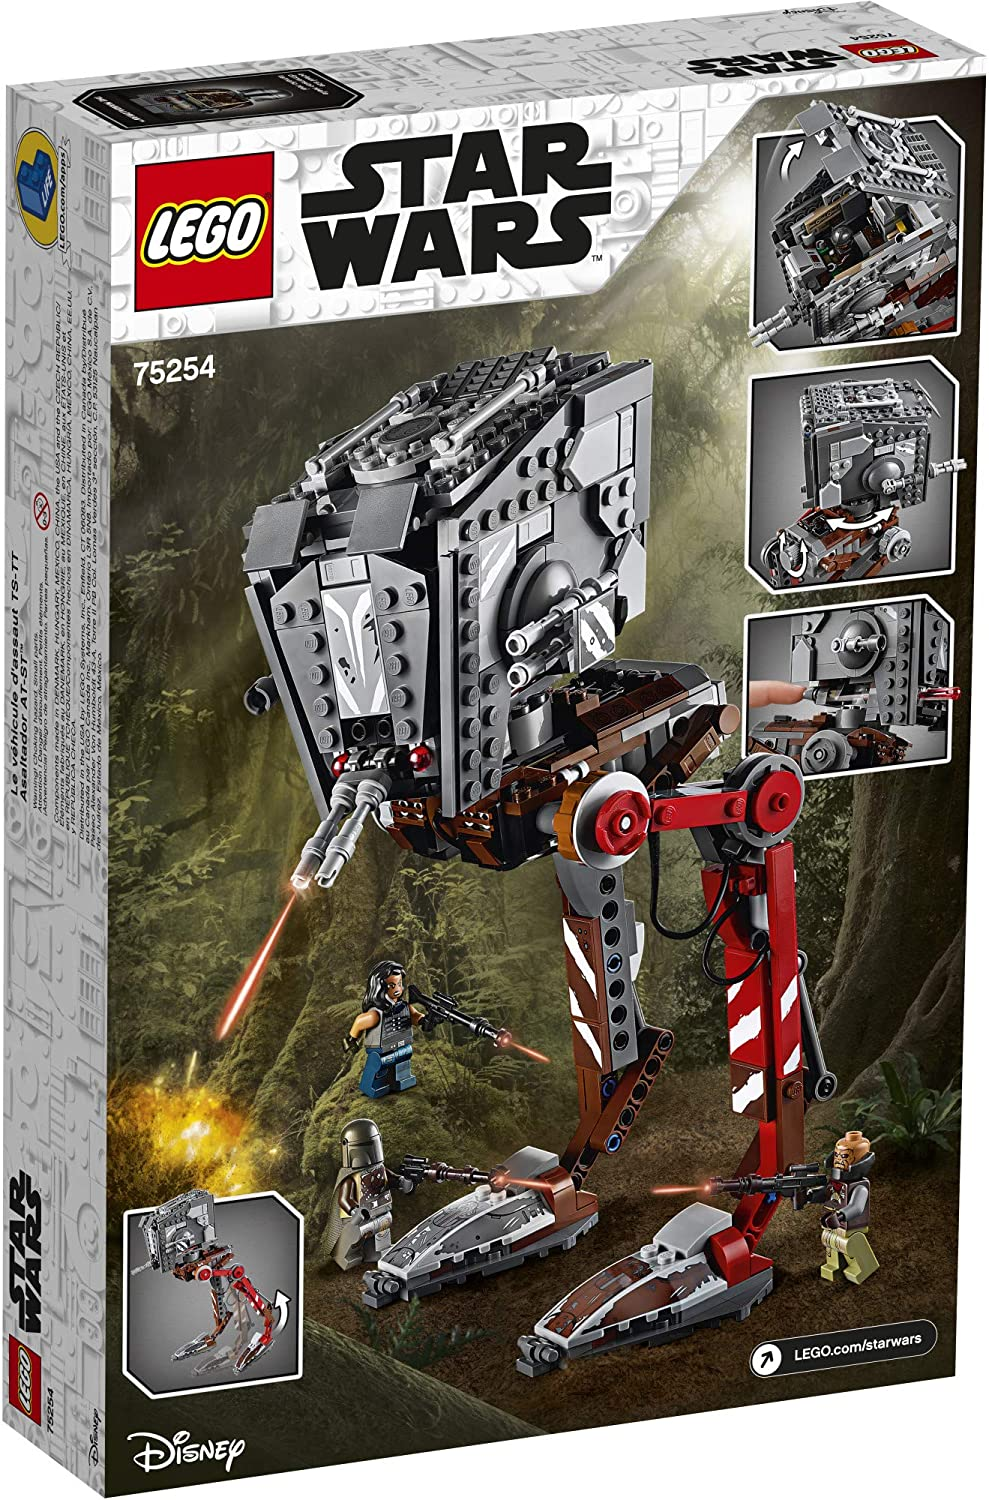 TM AT-ST Raider Lego Set 2